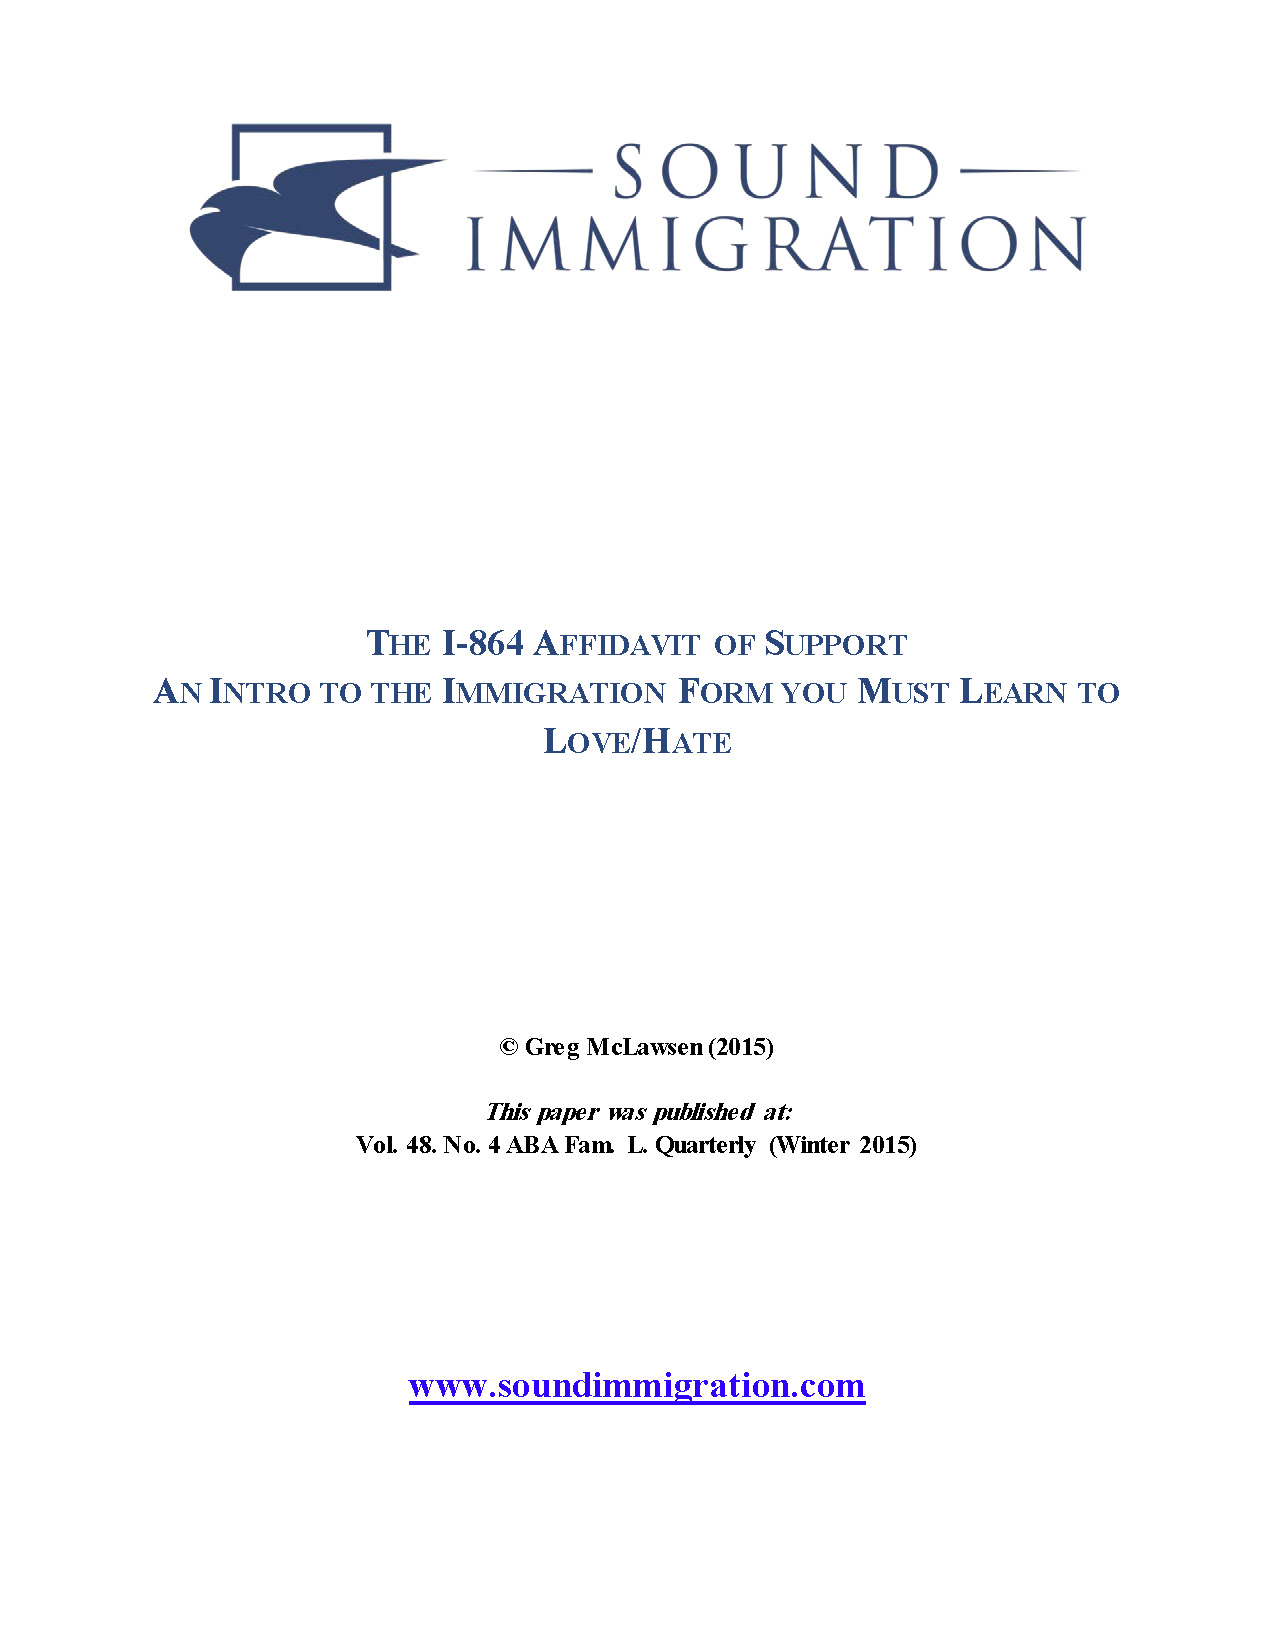 The I-864 Affidavit Of Support An Intro To The Immigration Form You Must Learn To Love/Hate